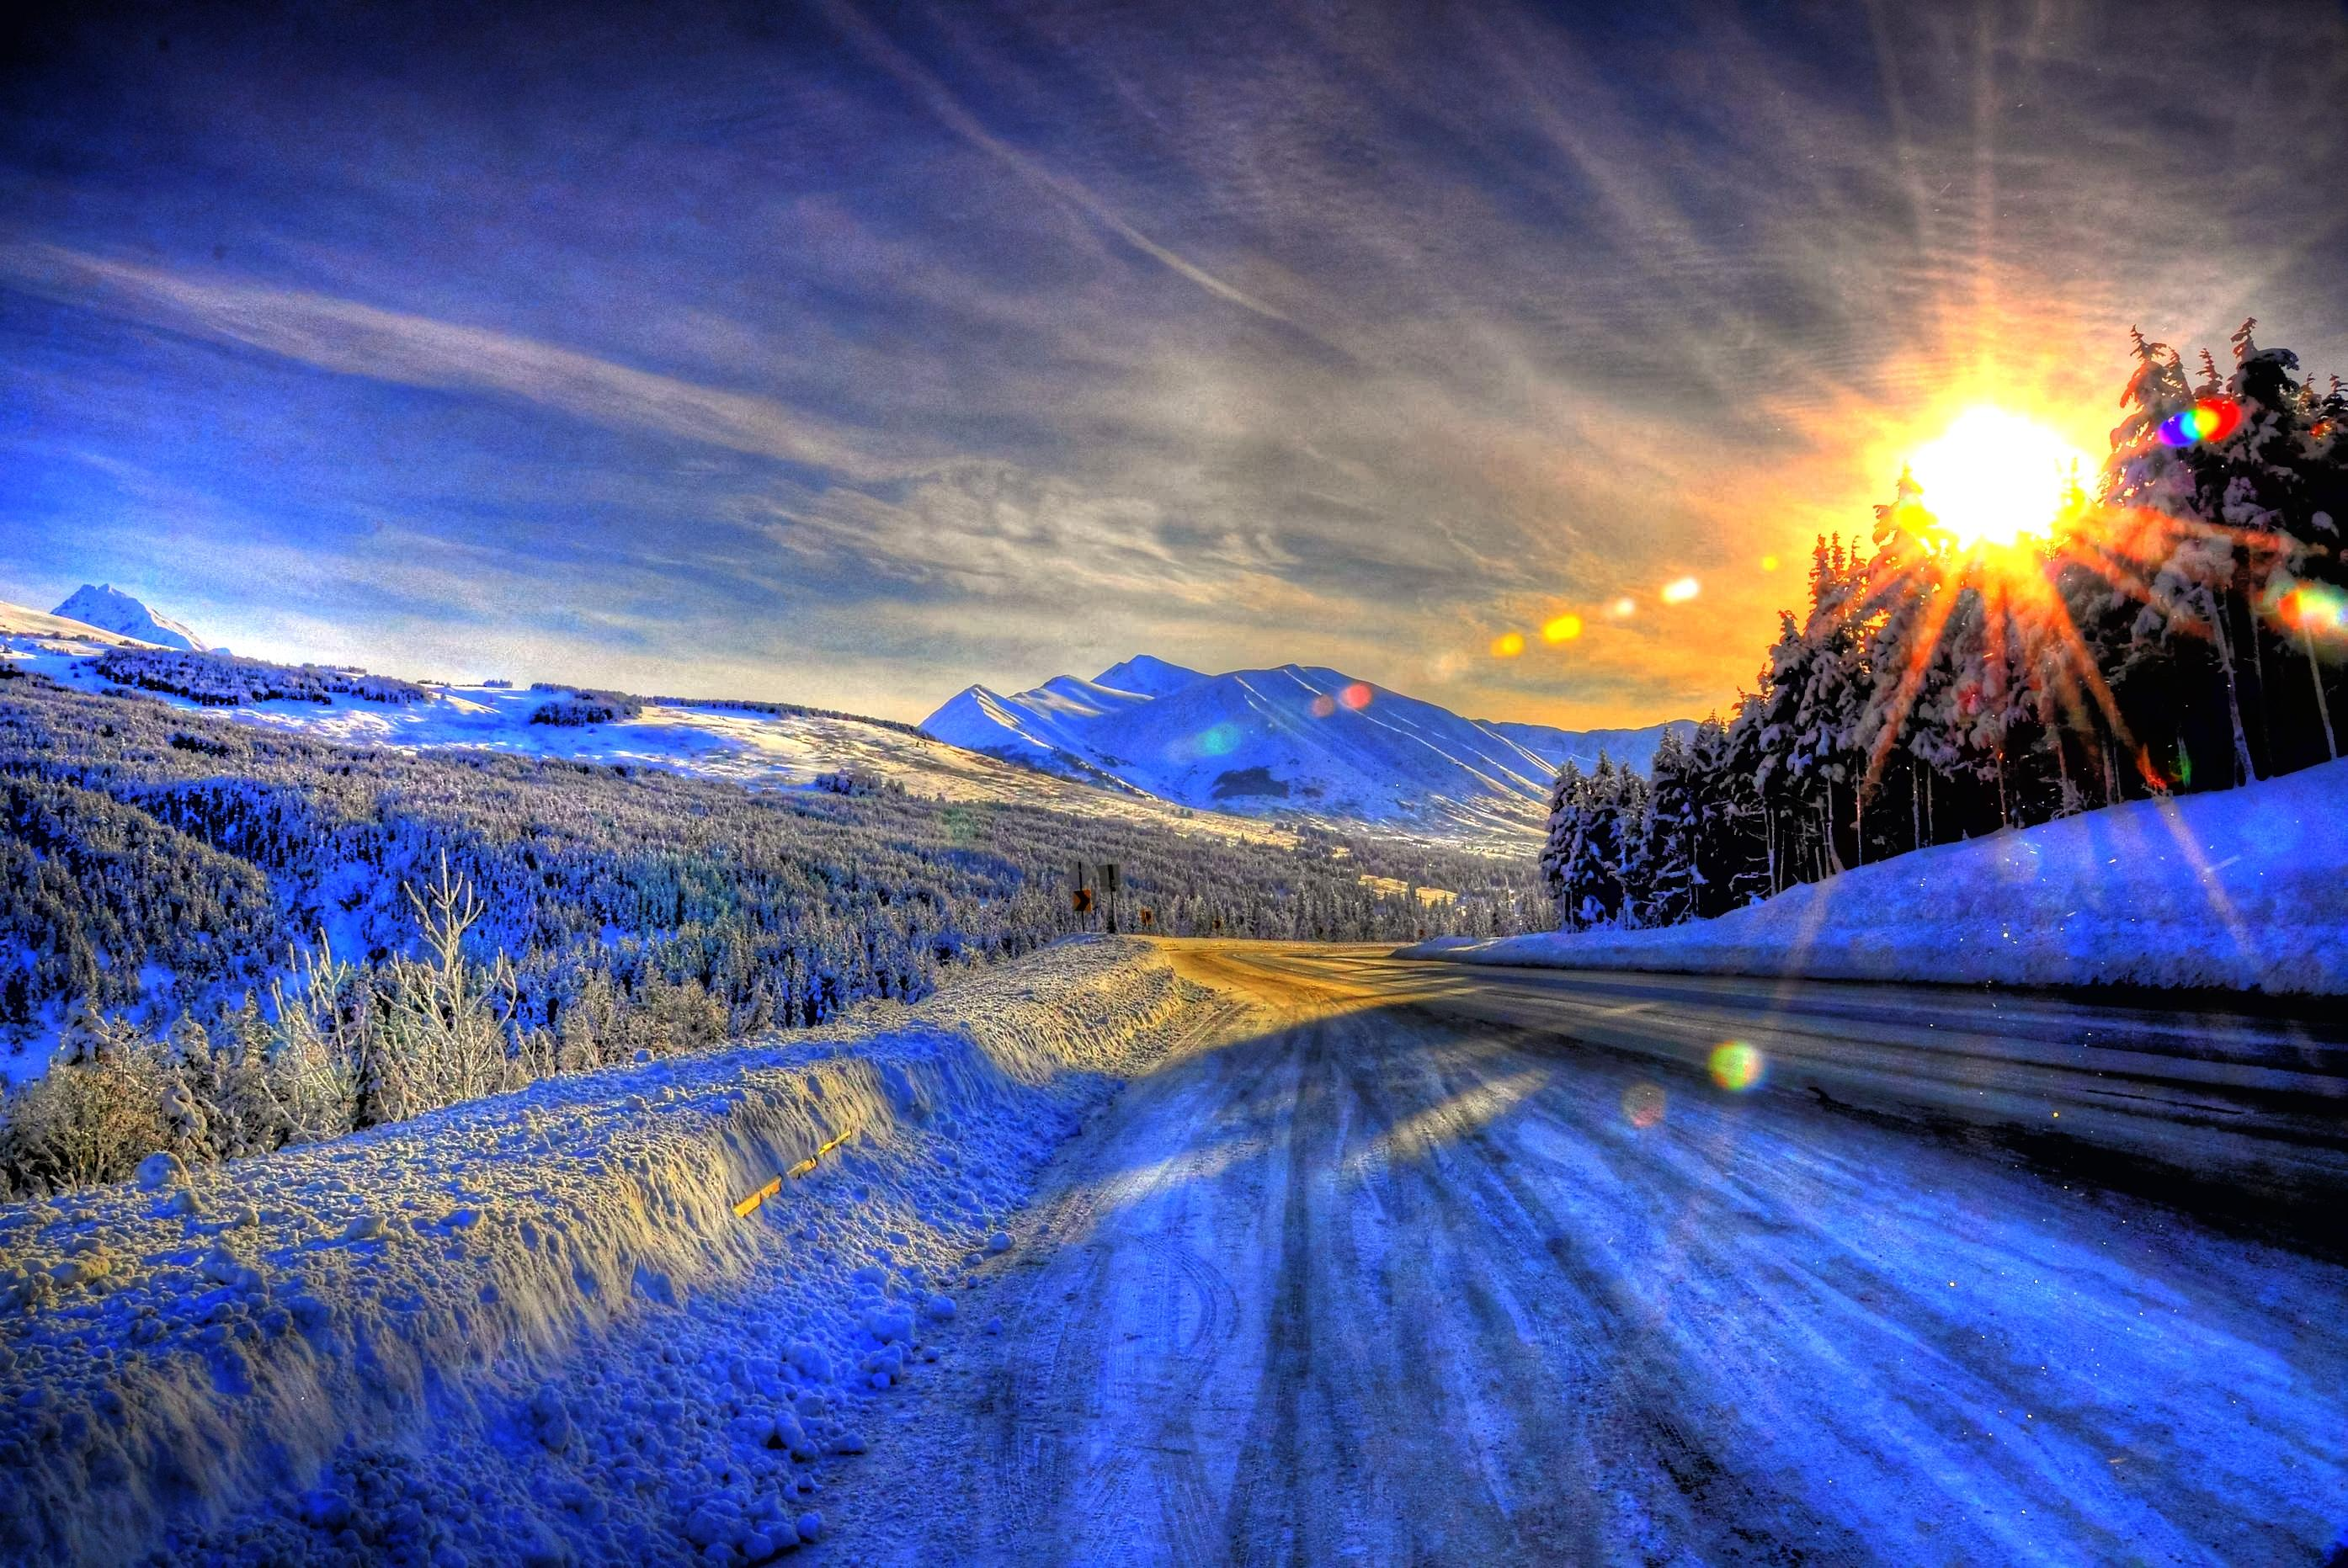 Winter Road At Sunset Hd Wallpaper Background Image 2789x1863